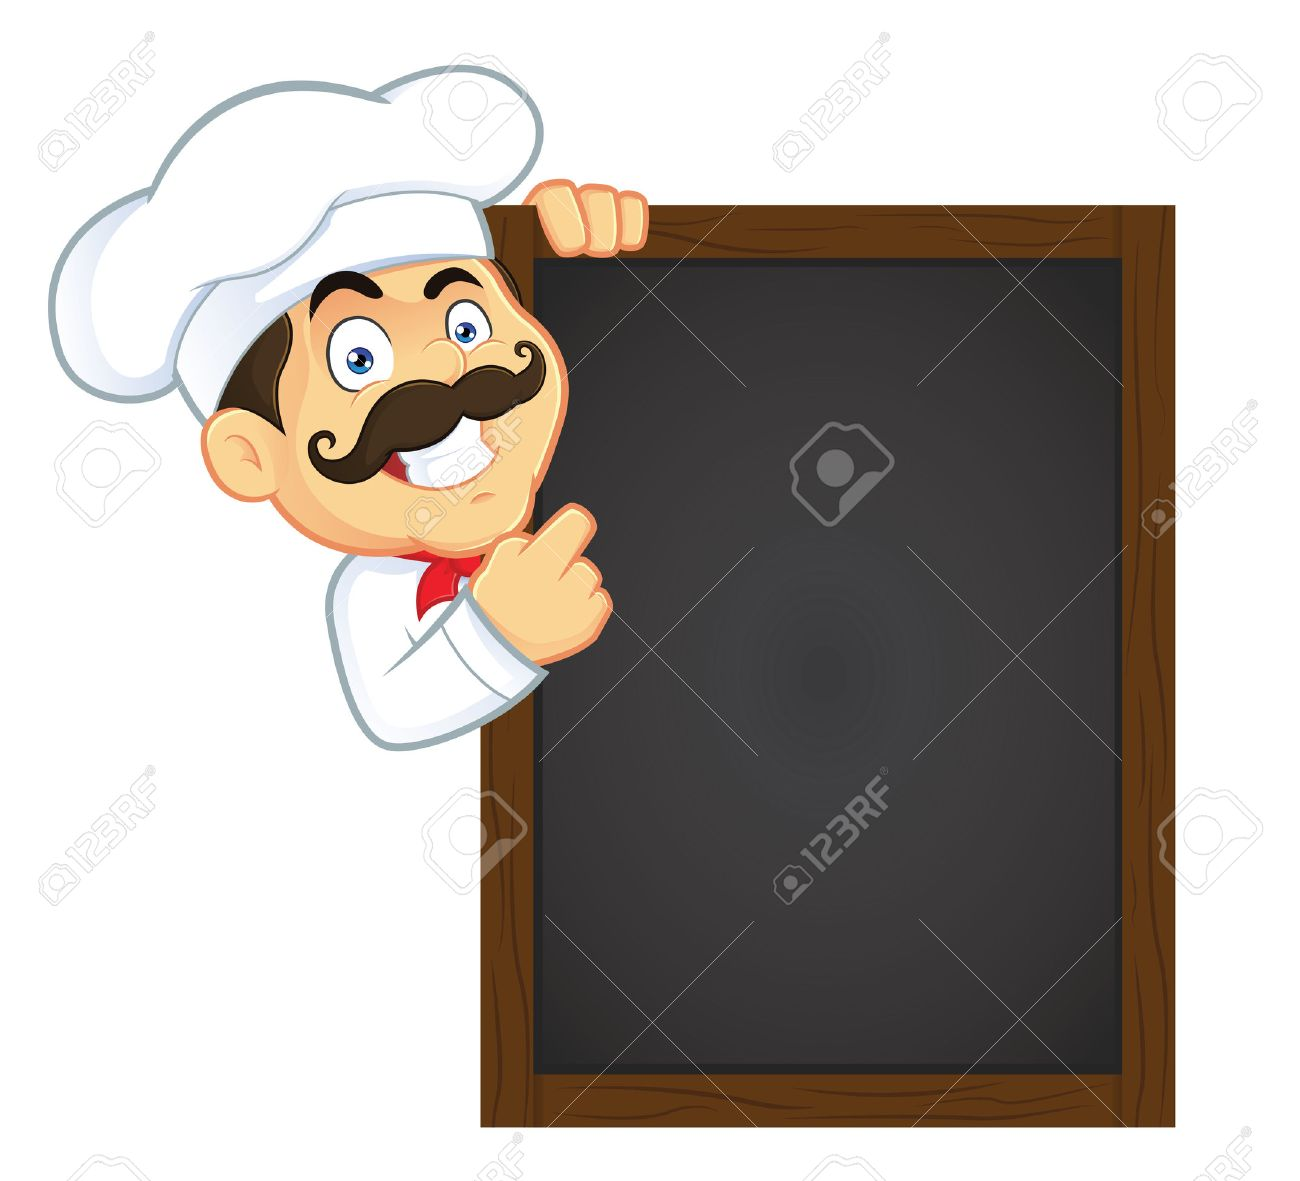 chef holding wooden menu board royalty free cliparts, vectors, and